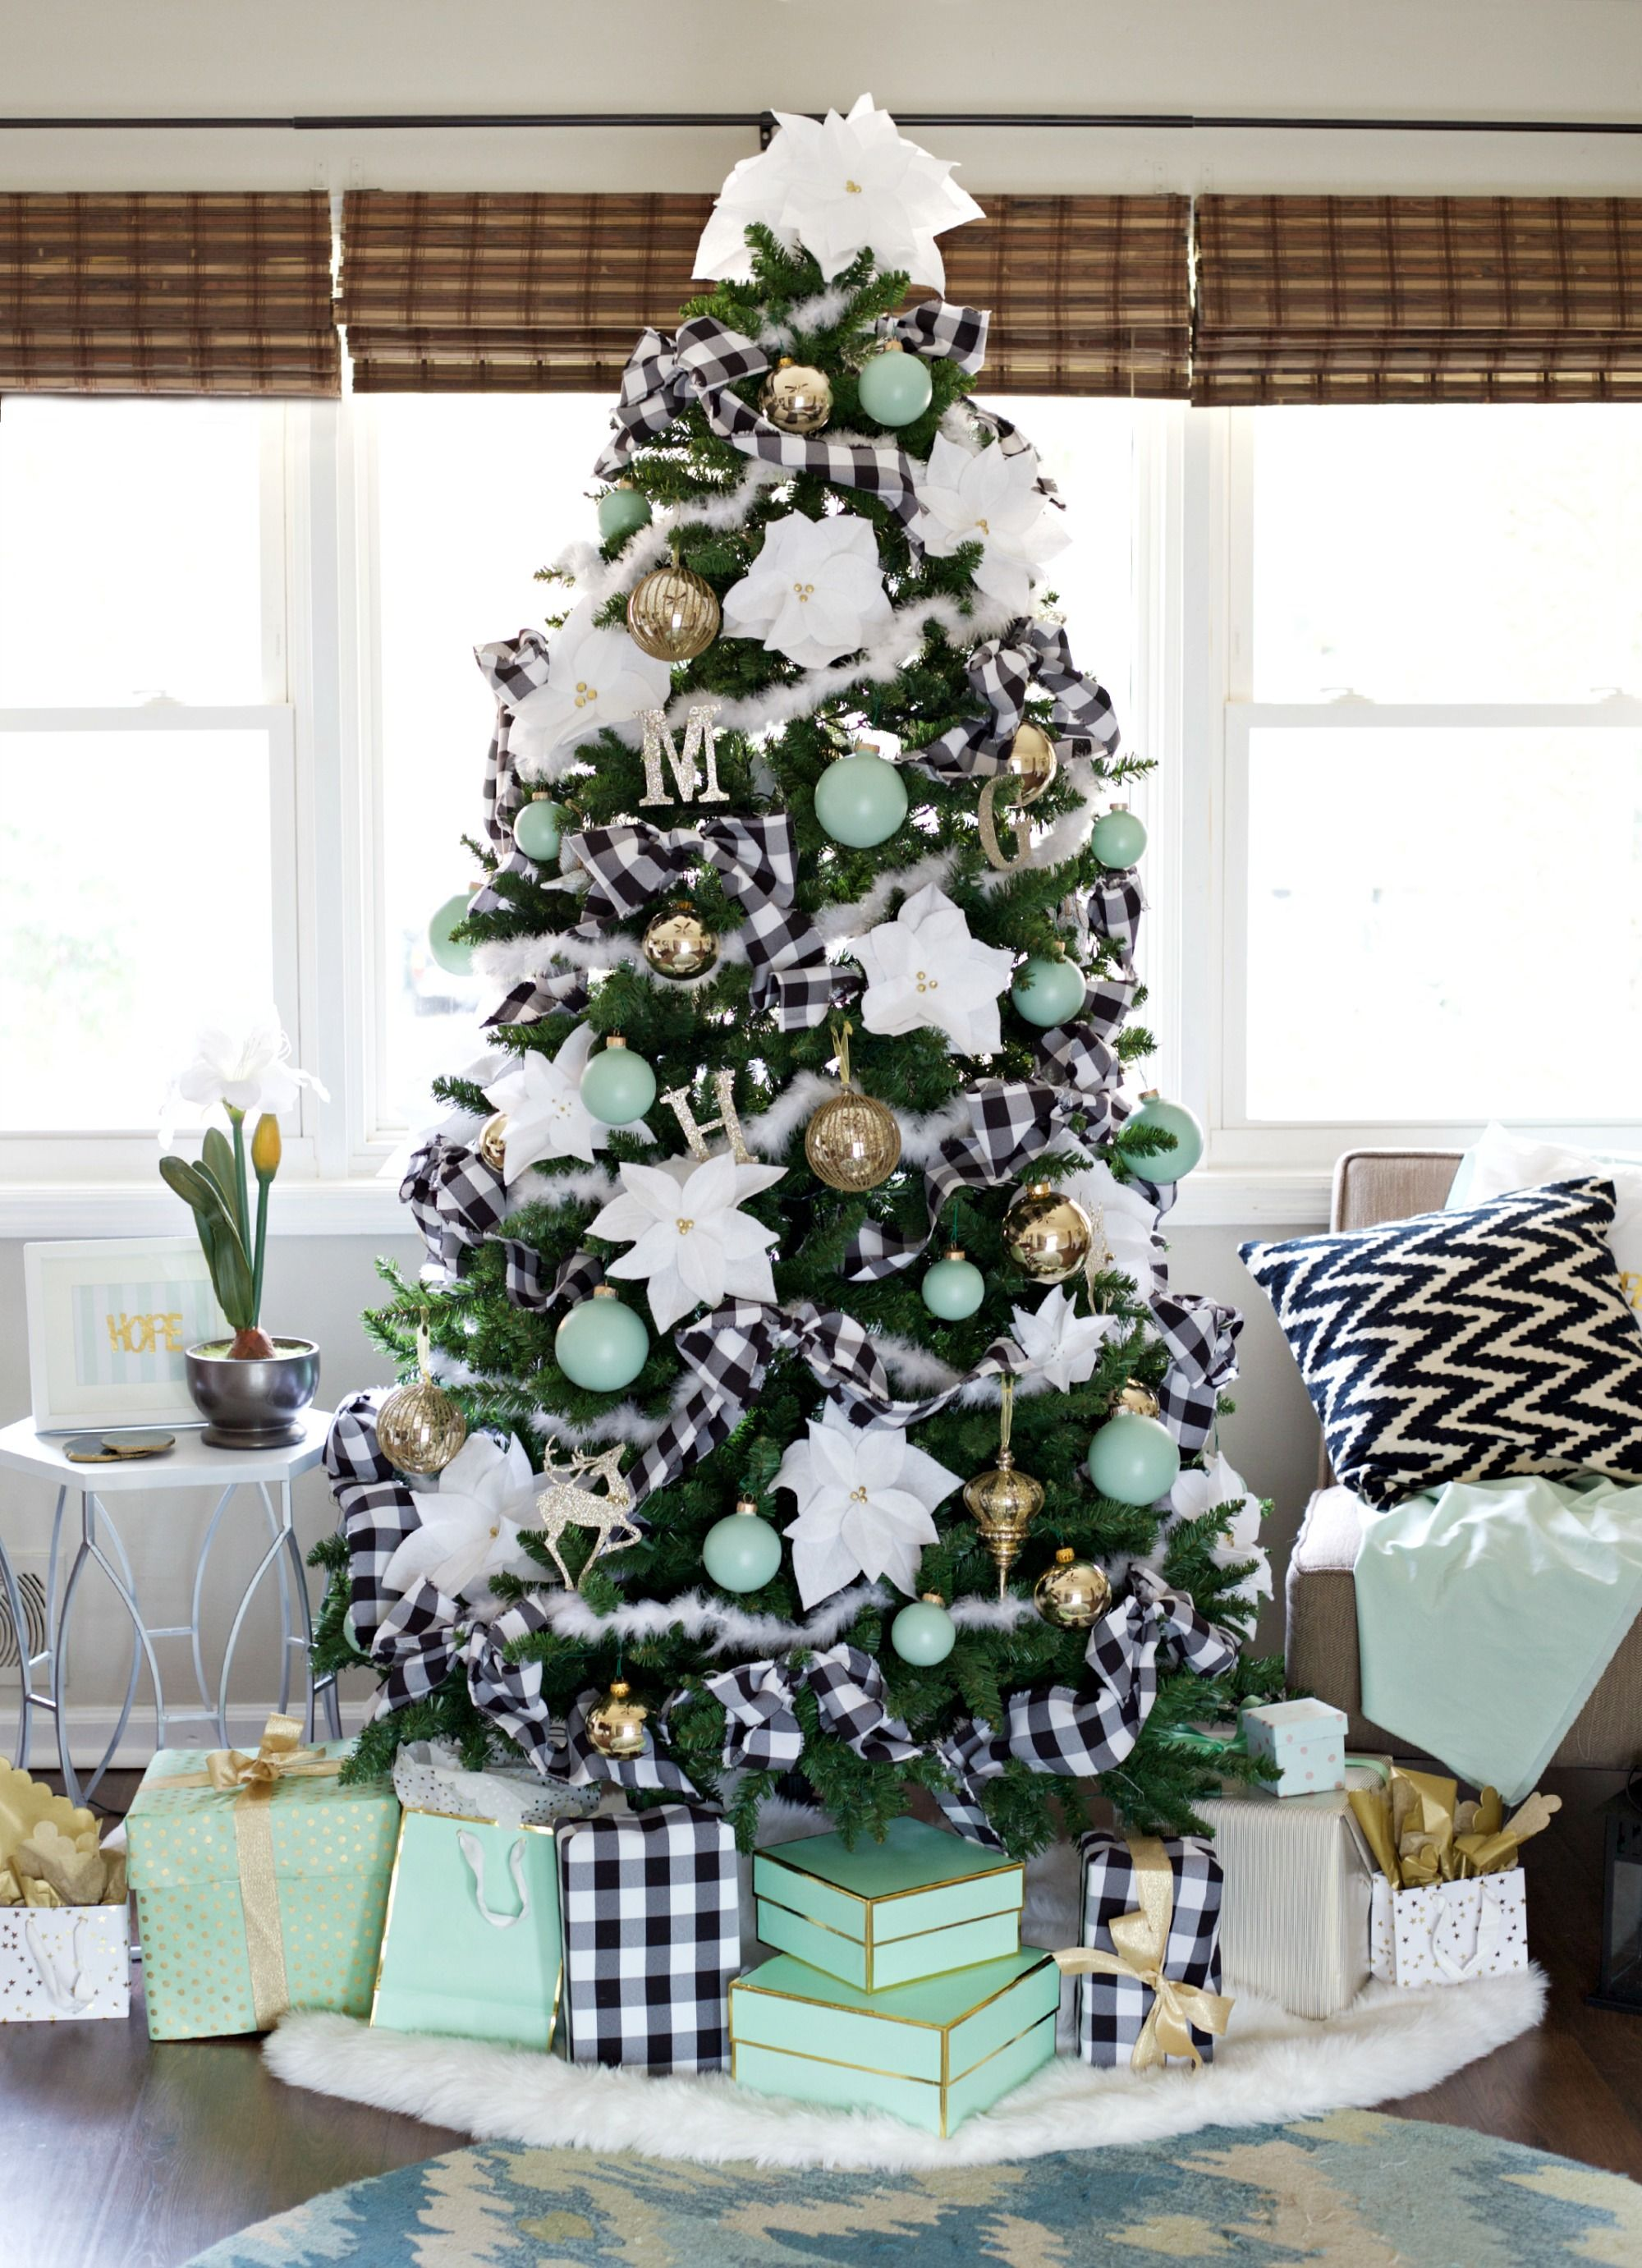 Christmas House Party Ideas Part - 46: Easy Christmas Decorating Ideas - Parties For PenniesParties For Pennies